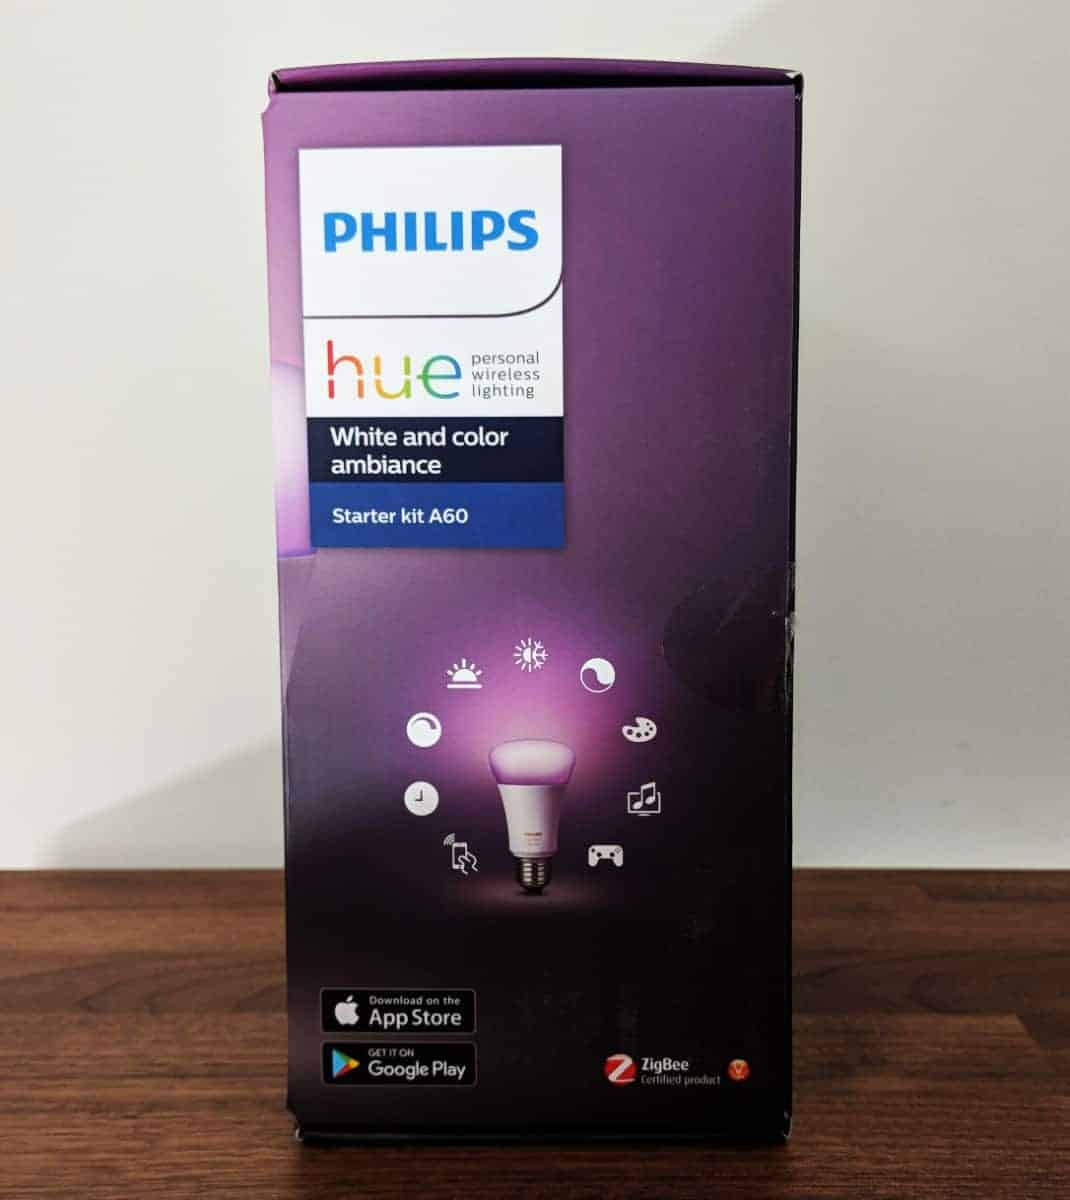 Philips-Hue-Starter-kit-Photos-03 Philips Hue Smart Lighting Review